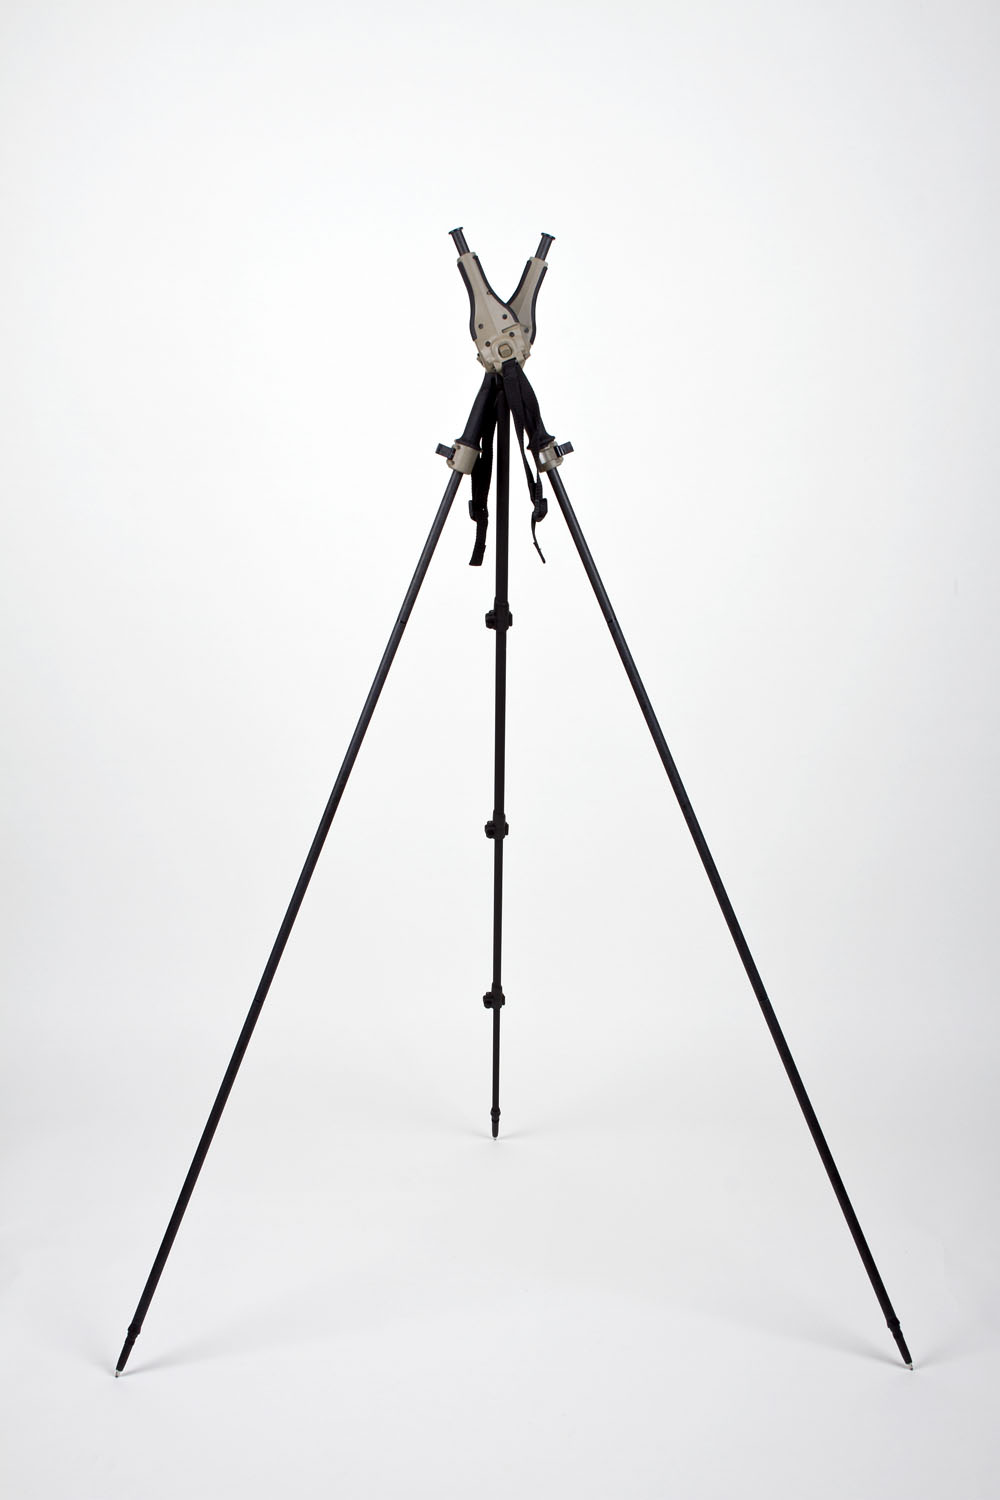 The only rifle Tripod to support every shooting position from standing to prone with just the squeeze of a button! Quick, quiet, lightweight and versatile. Get on target fast and make final adjustments with your support hand in its natural shooting position for your gun. Keep looking thru your sights and stay on target as you quickly adjust your rest with little body movement. With the STEALTHPOD X™ MONOPOD you are Ready for Every Shot™. Converts to a trekking pole to get you in and out of the back country away from the crowd.